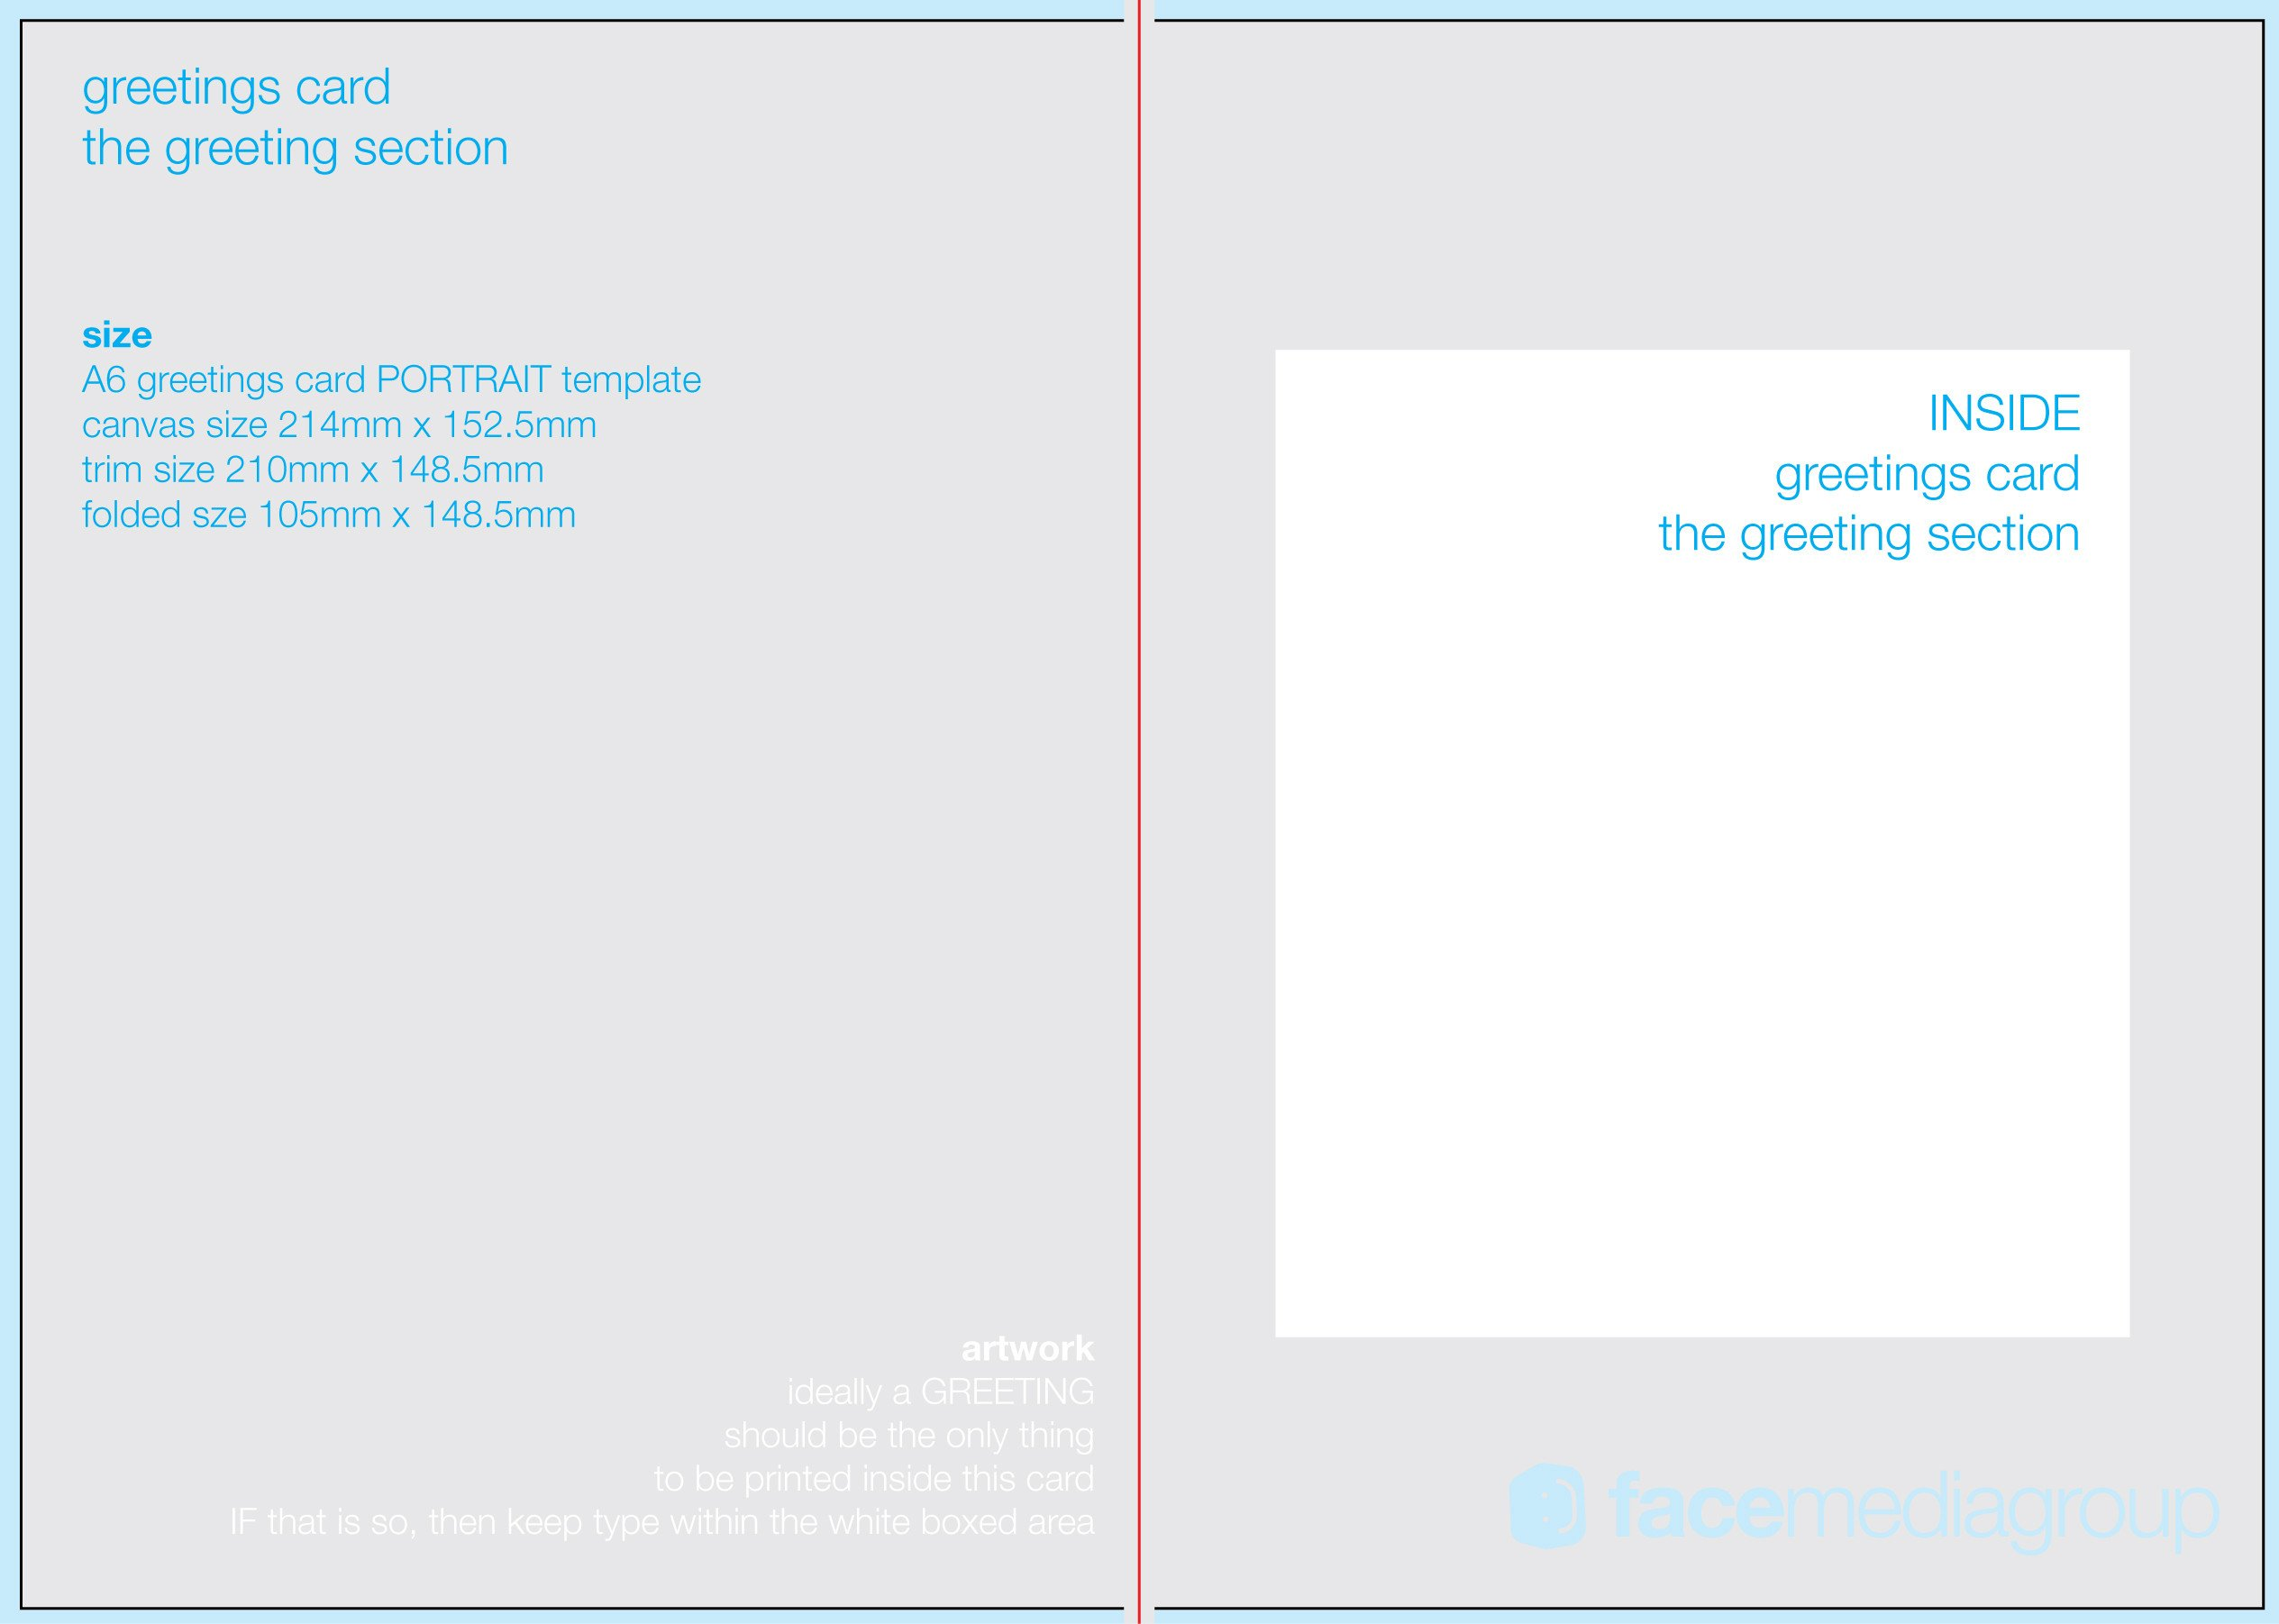 Word Greeting Card Template Free Blank Greetings Card Artwork Templates for Download